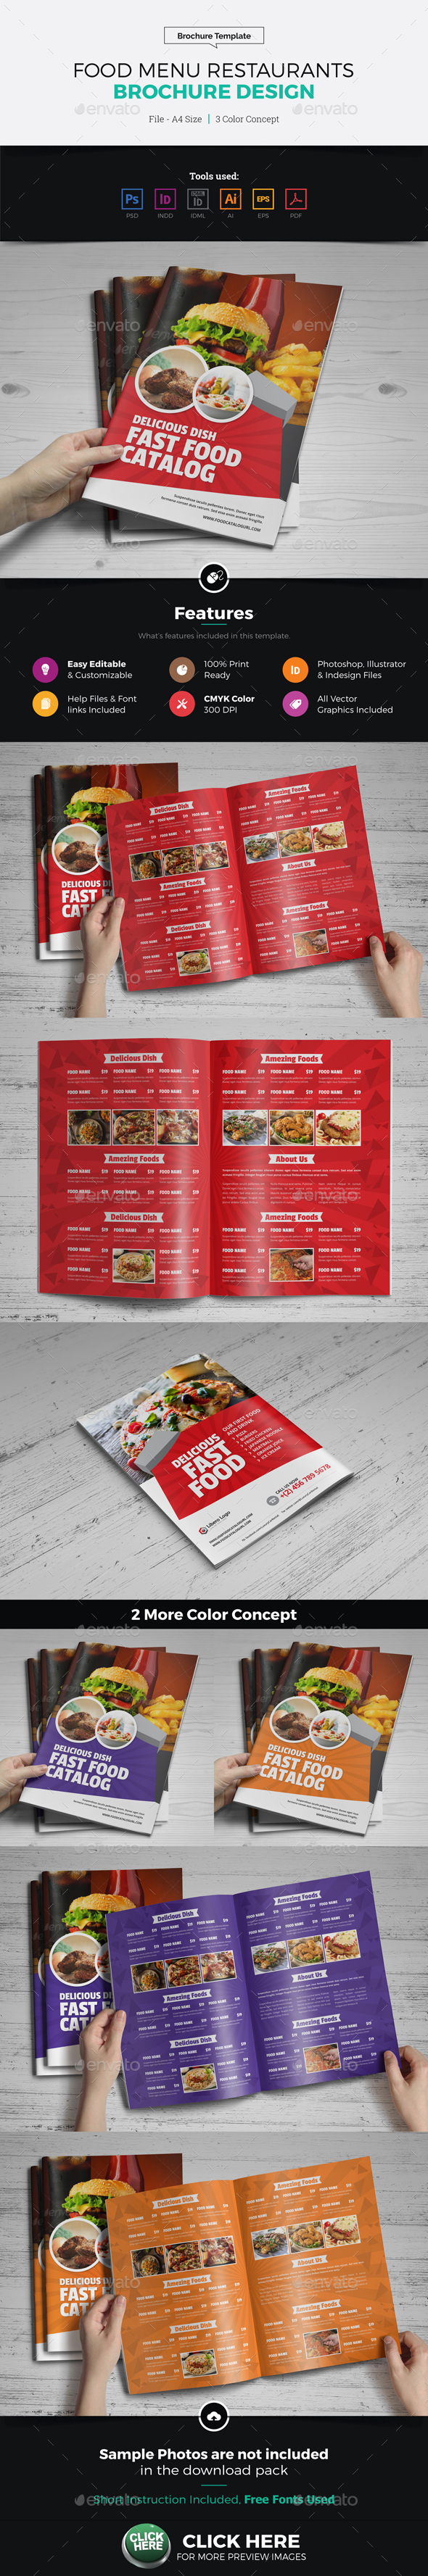 Food Menu Restaurants Brochure Design - Catalogs Brochures